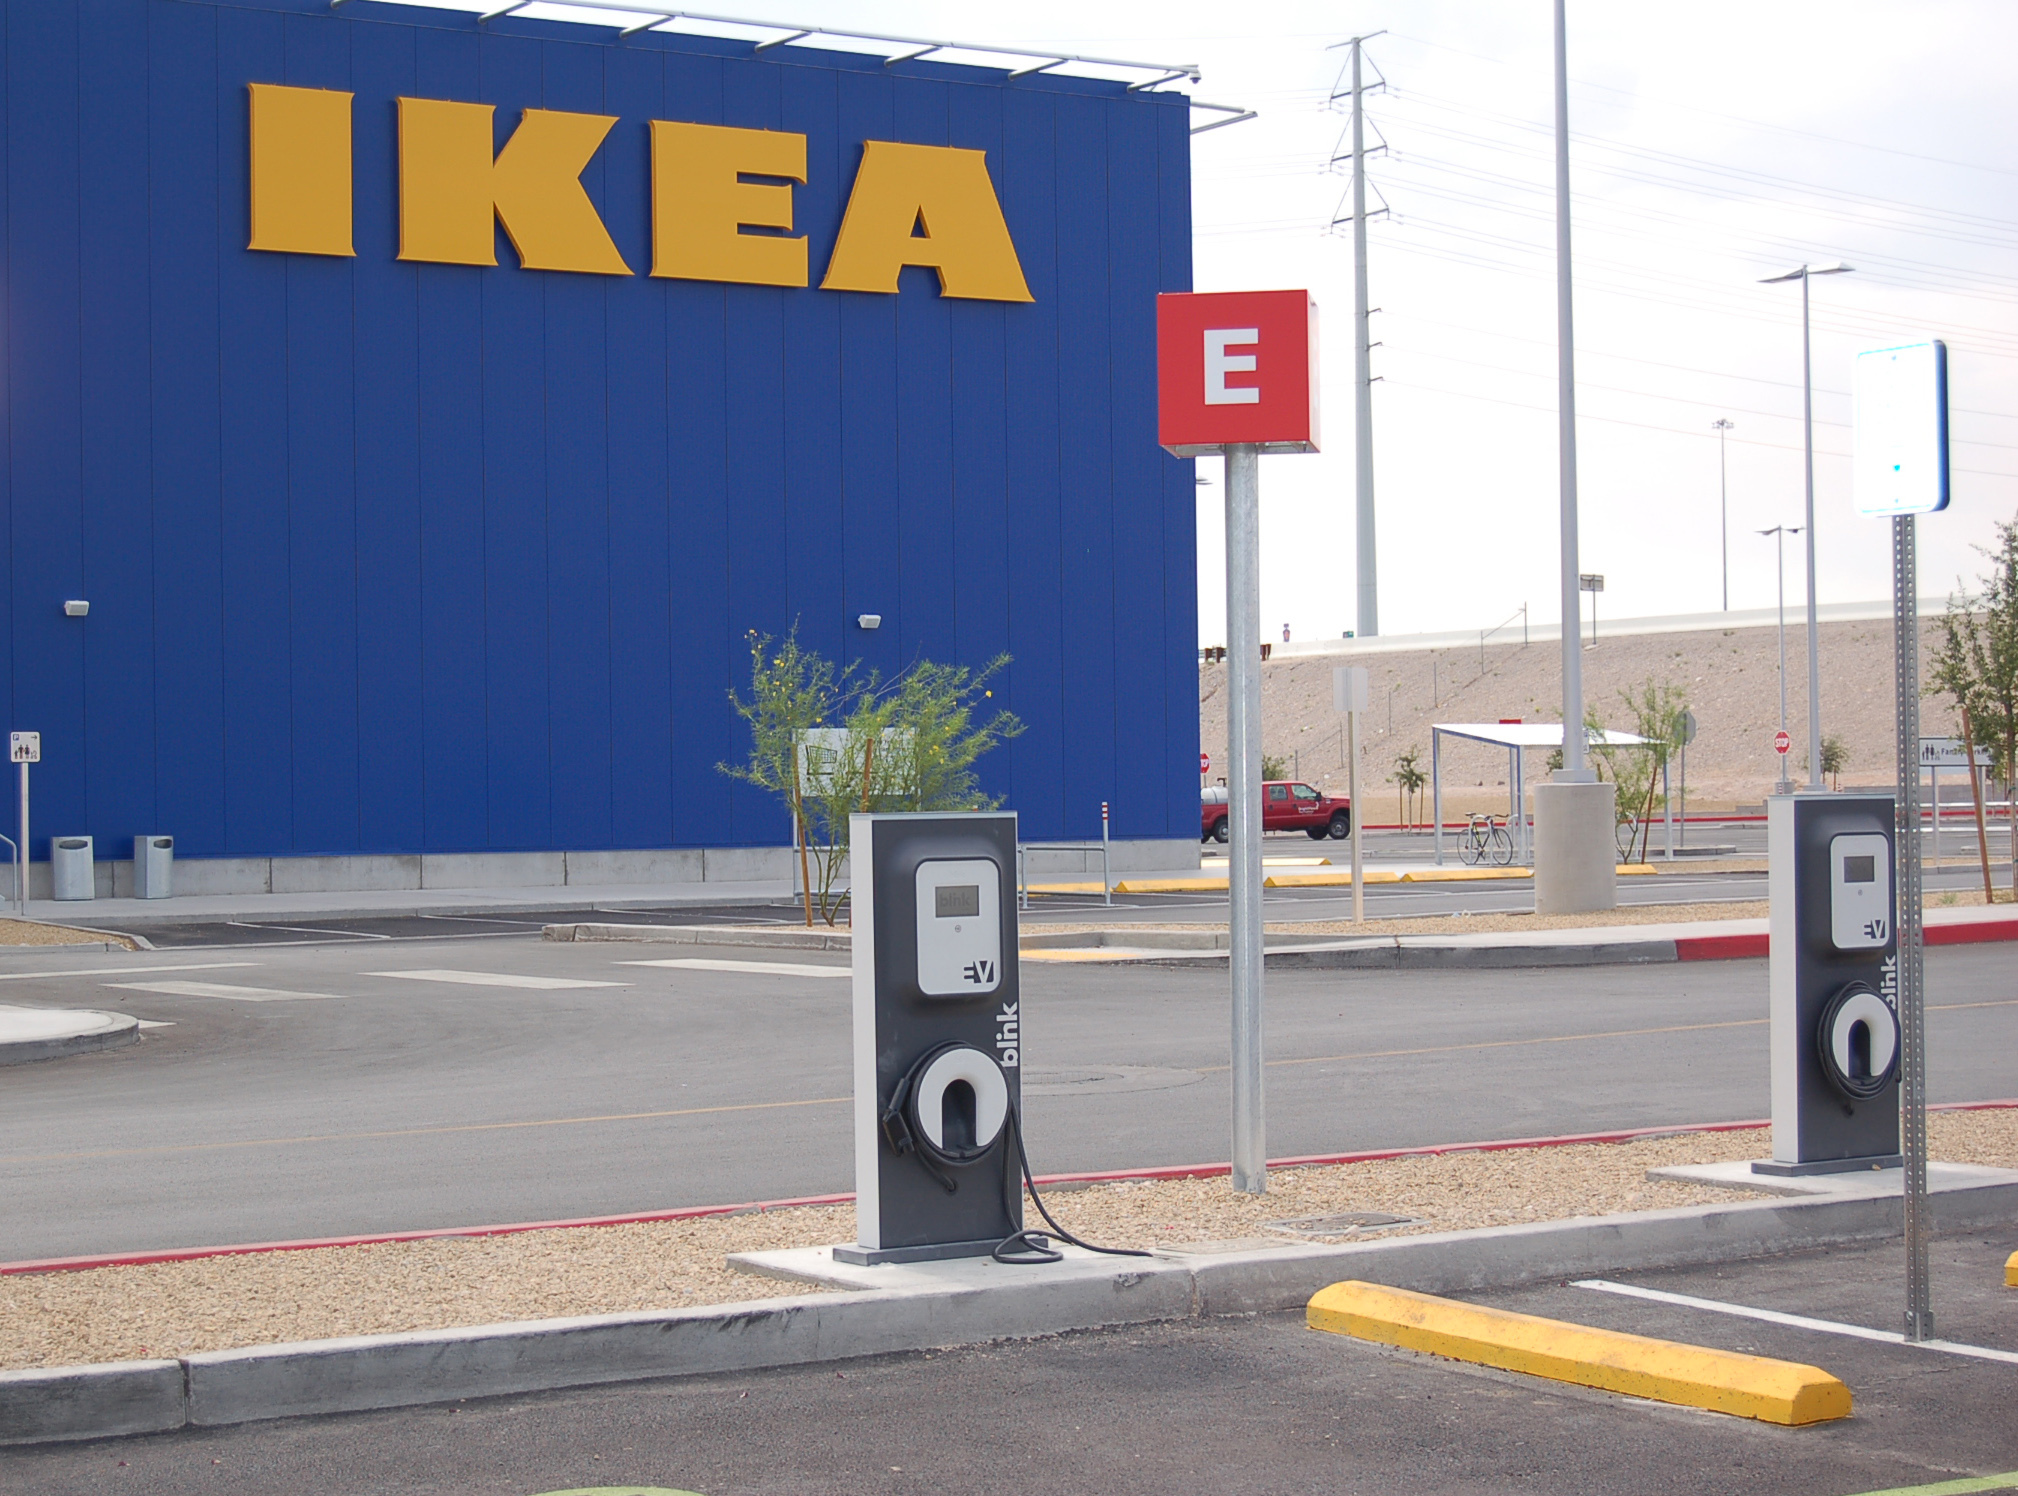 Ikea Las Vegas Plugs In 3 Electric Vehicle Charging Stations 14th Ikea Store In U S To Complete Installation Of Units Business Wire,Ina Garten Beef Tenderloin With Gorgonzola Sauce